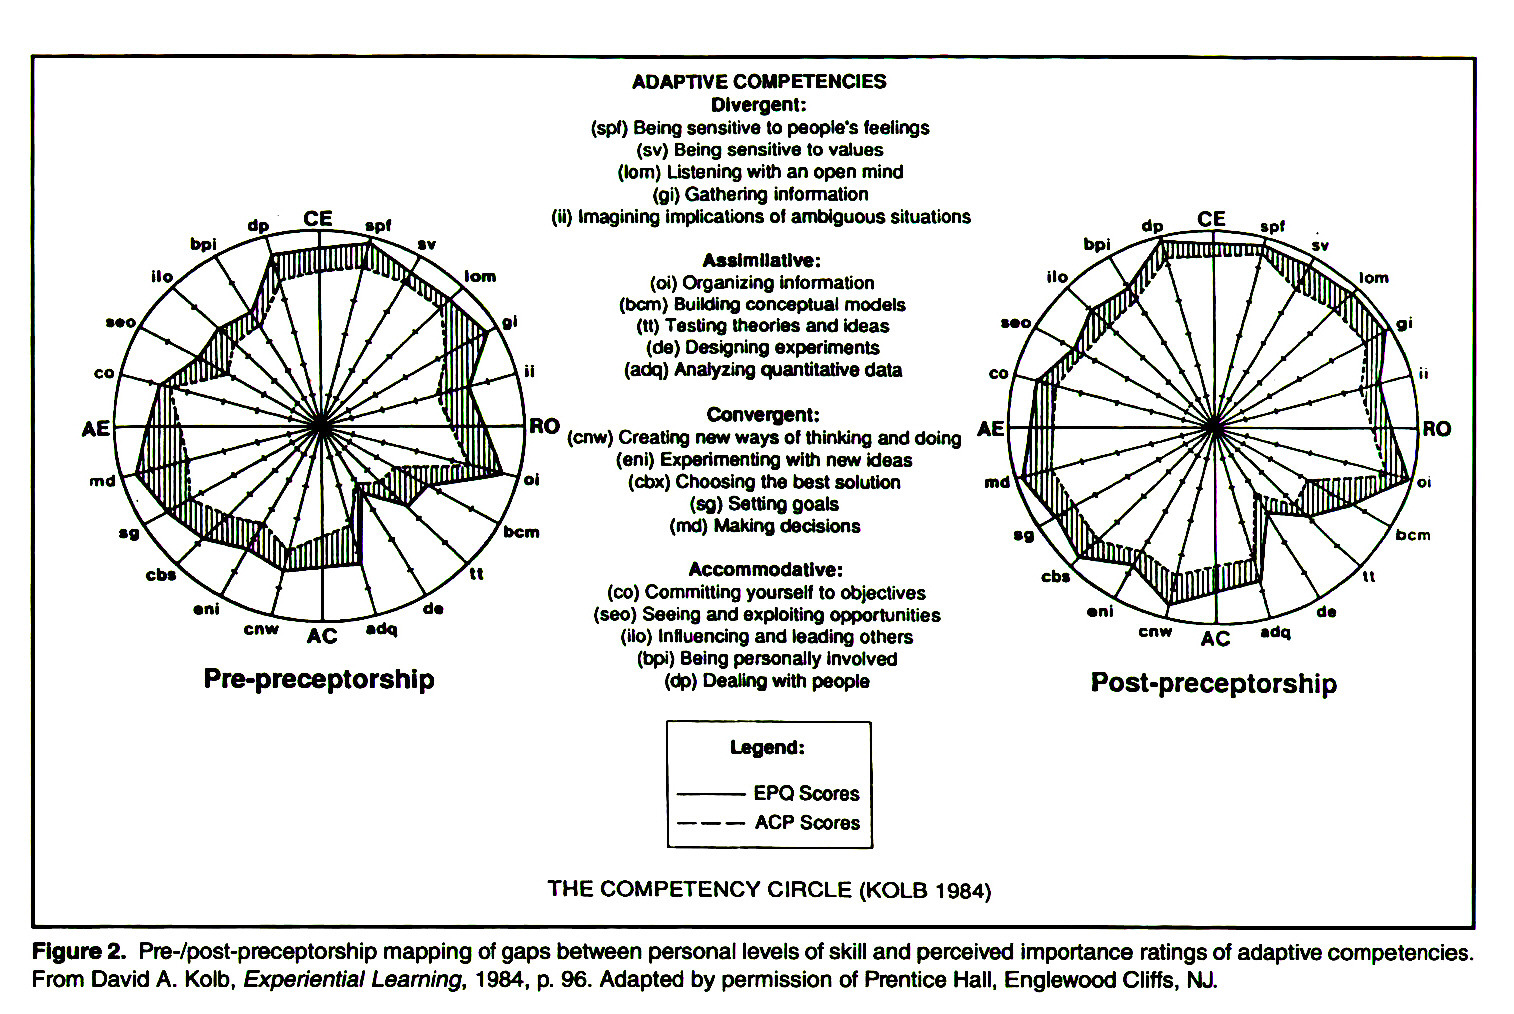 Figure 2. Pre-/post-preceptorship mapping of gaps between personal levels of skill and perceived importance ratings of adaptive competencies. From David A. KoIb, Experiential Learning, 1984, p. 96. Adapted by permission of Prentice Hall, Englewood Cliffs, NJ.